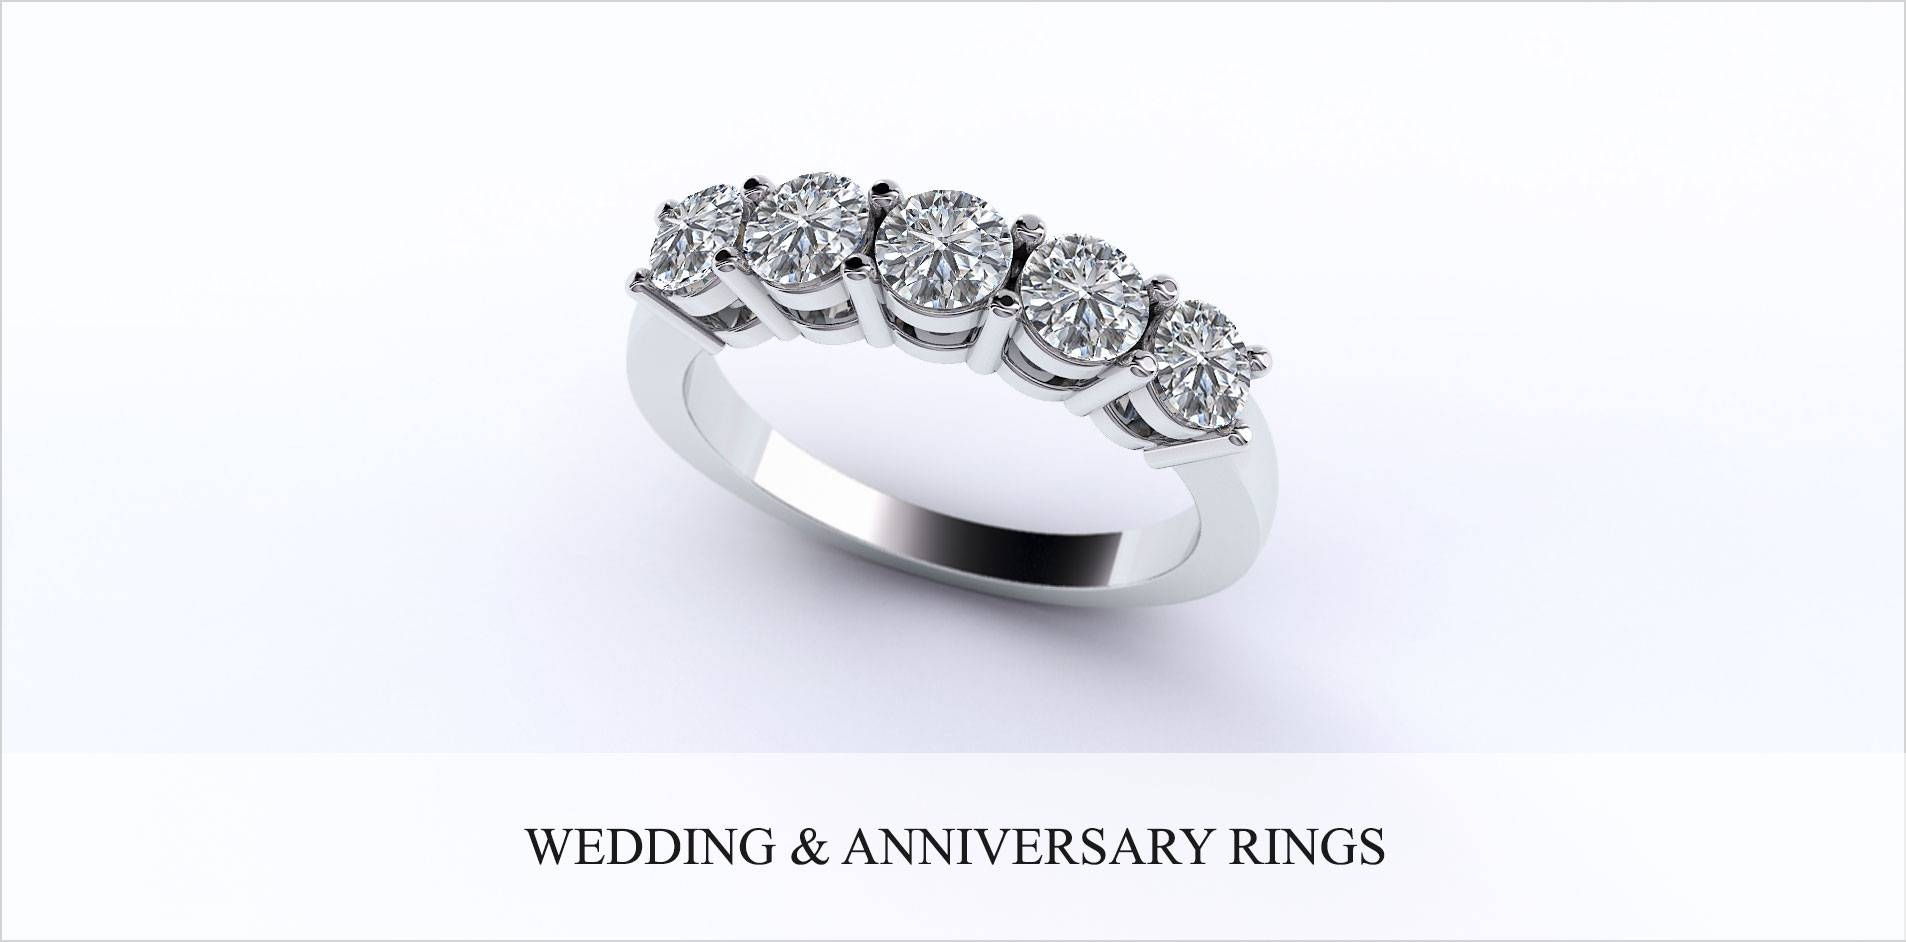 pawn diamond future wedding jewelry rings past present ring regal shop